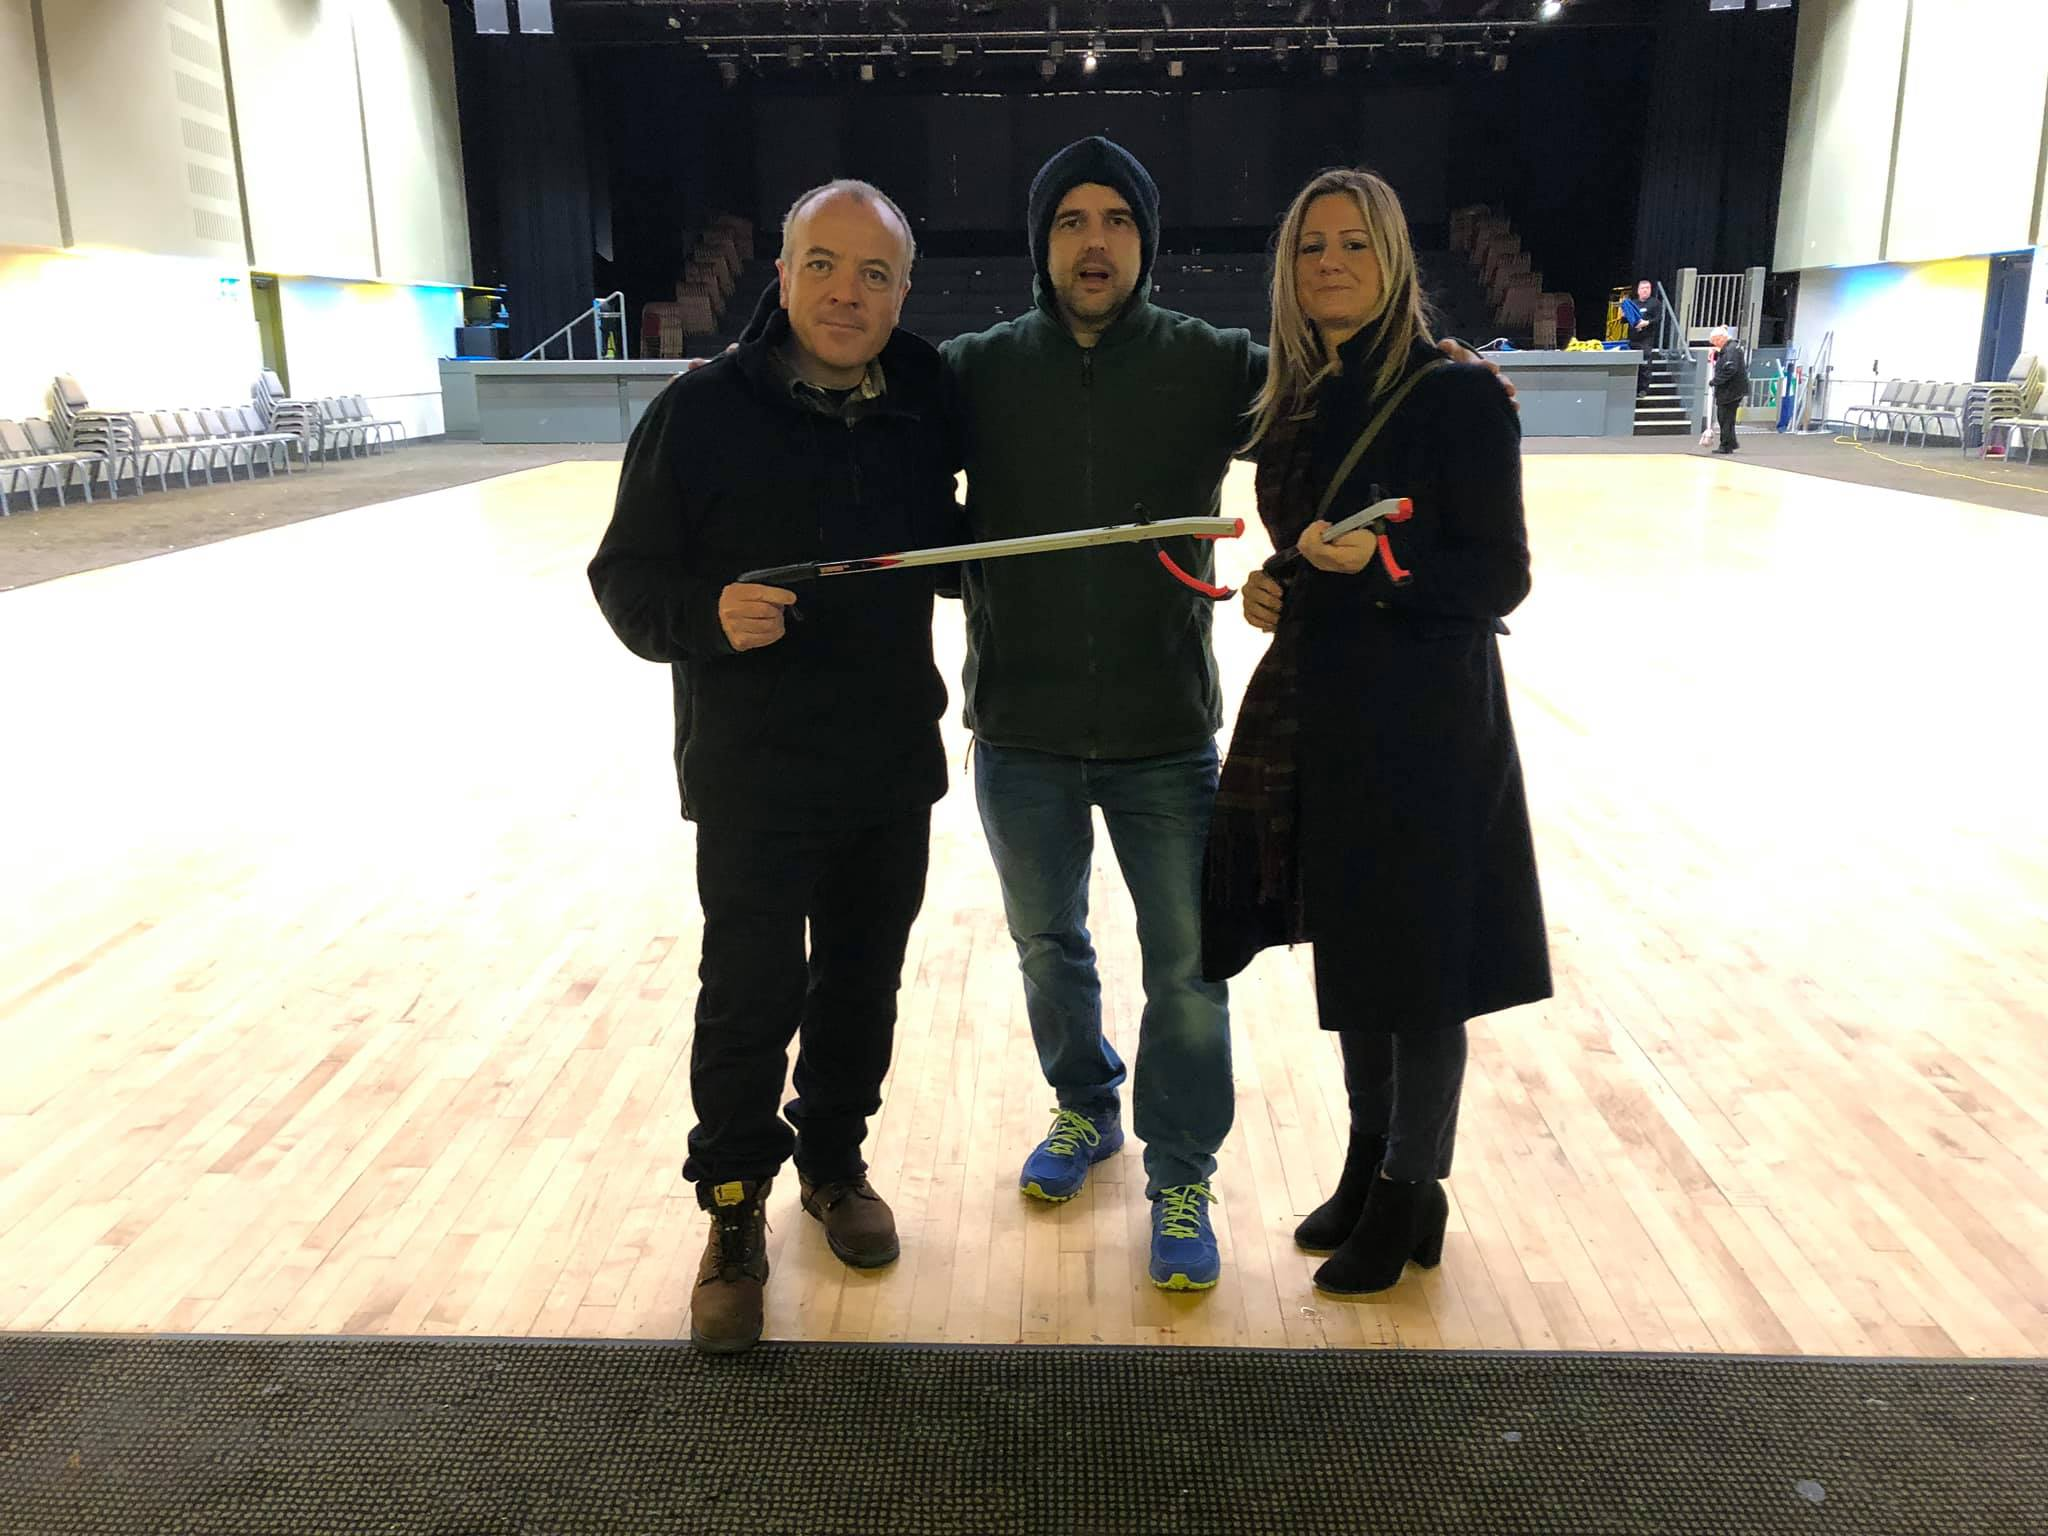 From left to right:  Cllr Mike Kane, John-Paul Coe and Carly from Helping Hands Environmental, met November 2019, to discuss ways to support the project and the exhibition of the mapping project outcomes at Wythenshawe Forum's event hall.